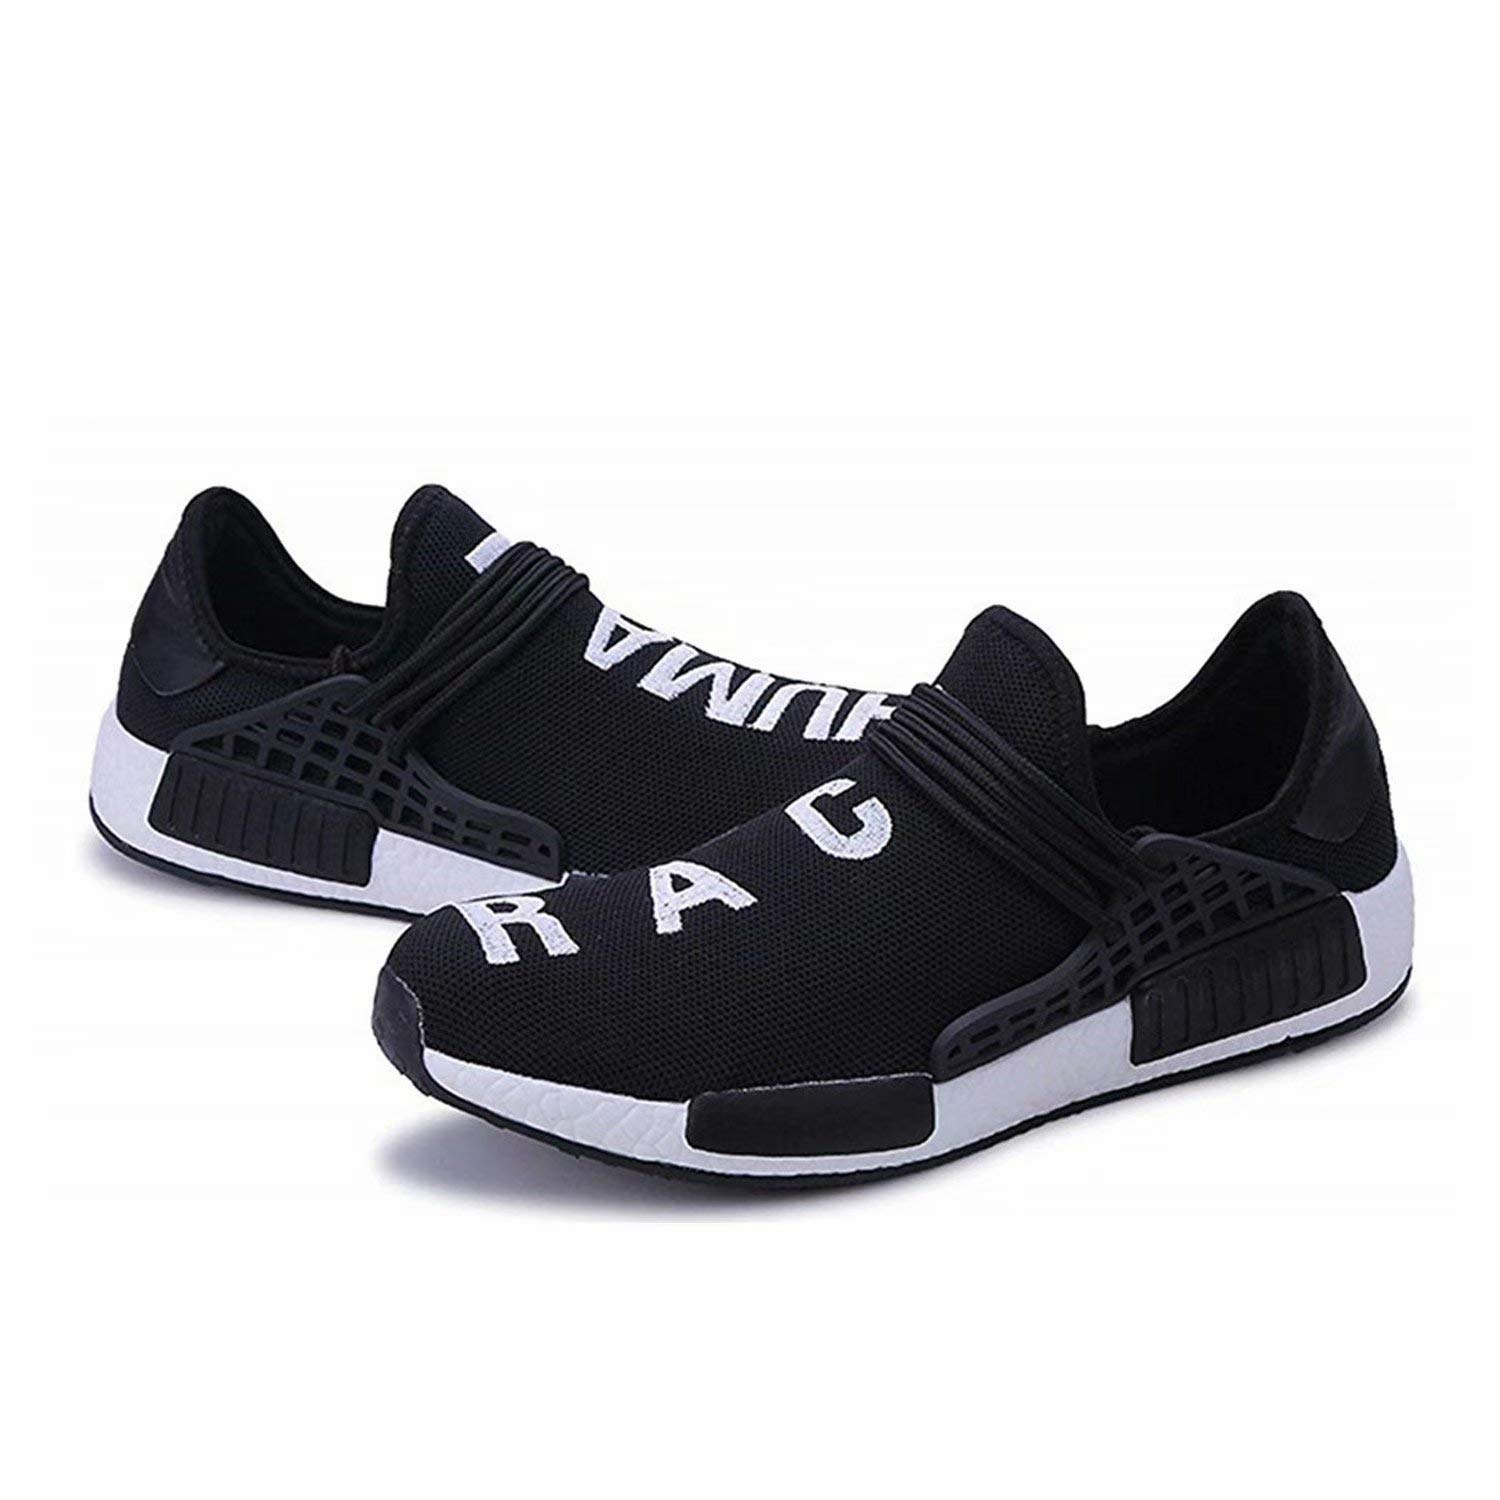 Mens /& Womens Casual Breathable Lightweight Trail Shoes Flyknit Running Fashion Sneakers